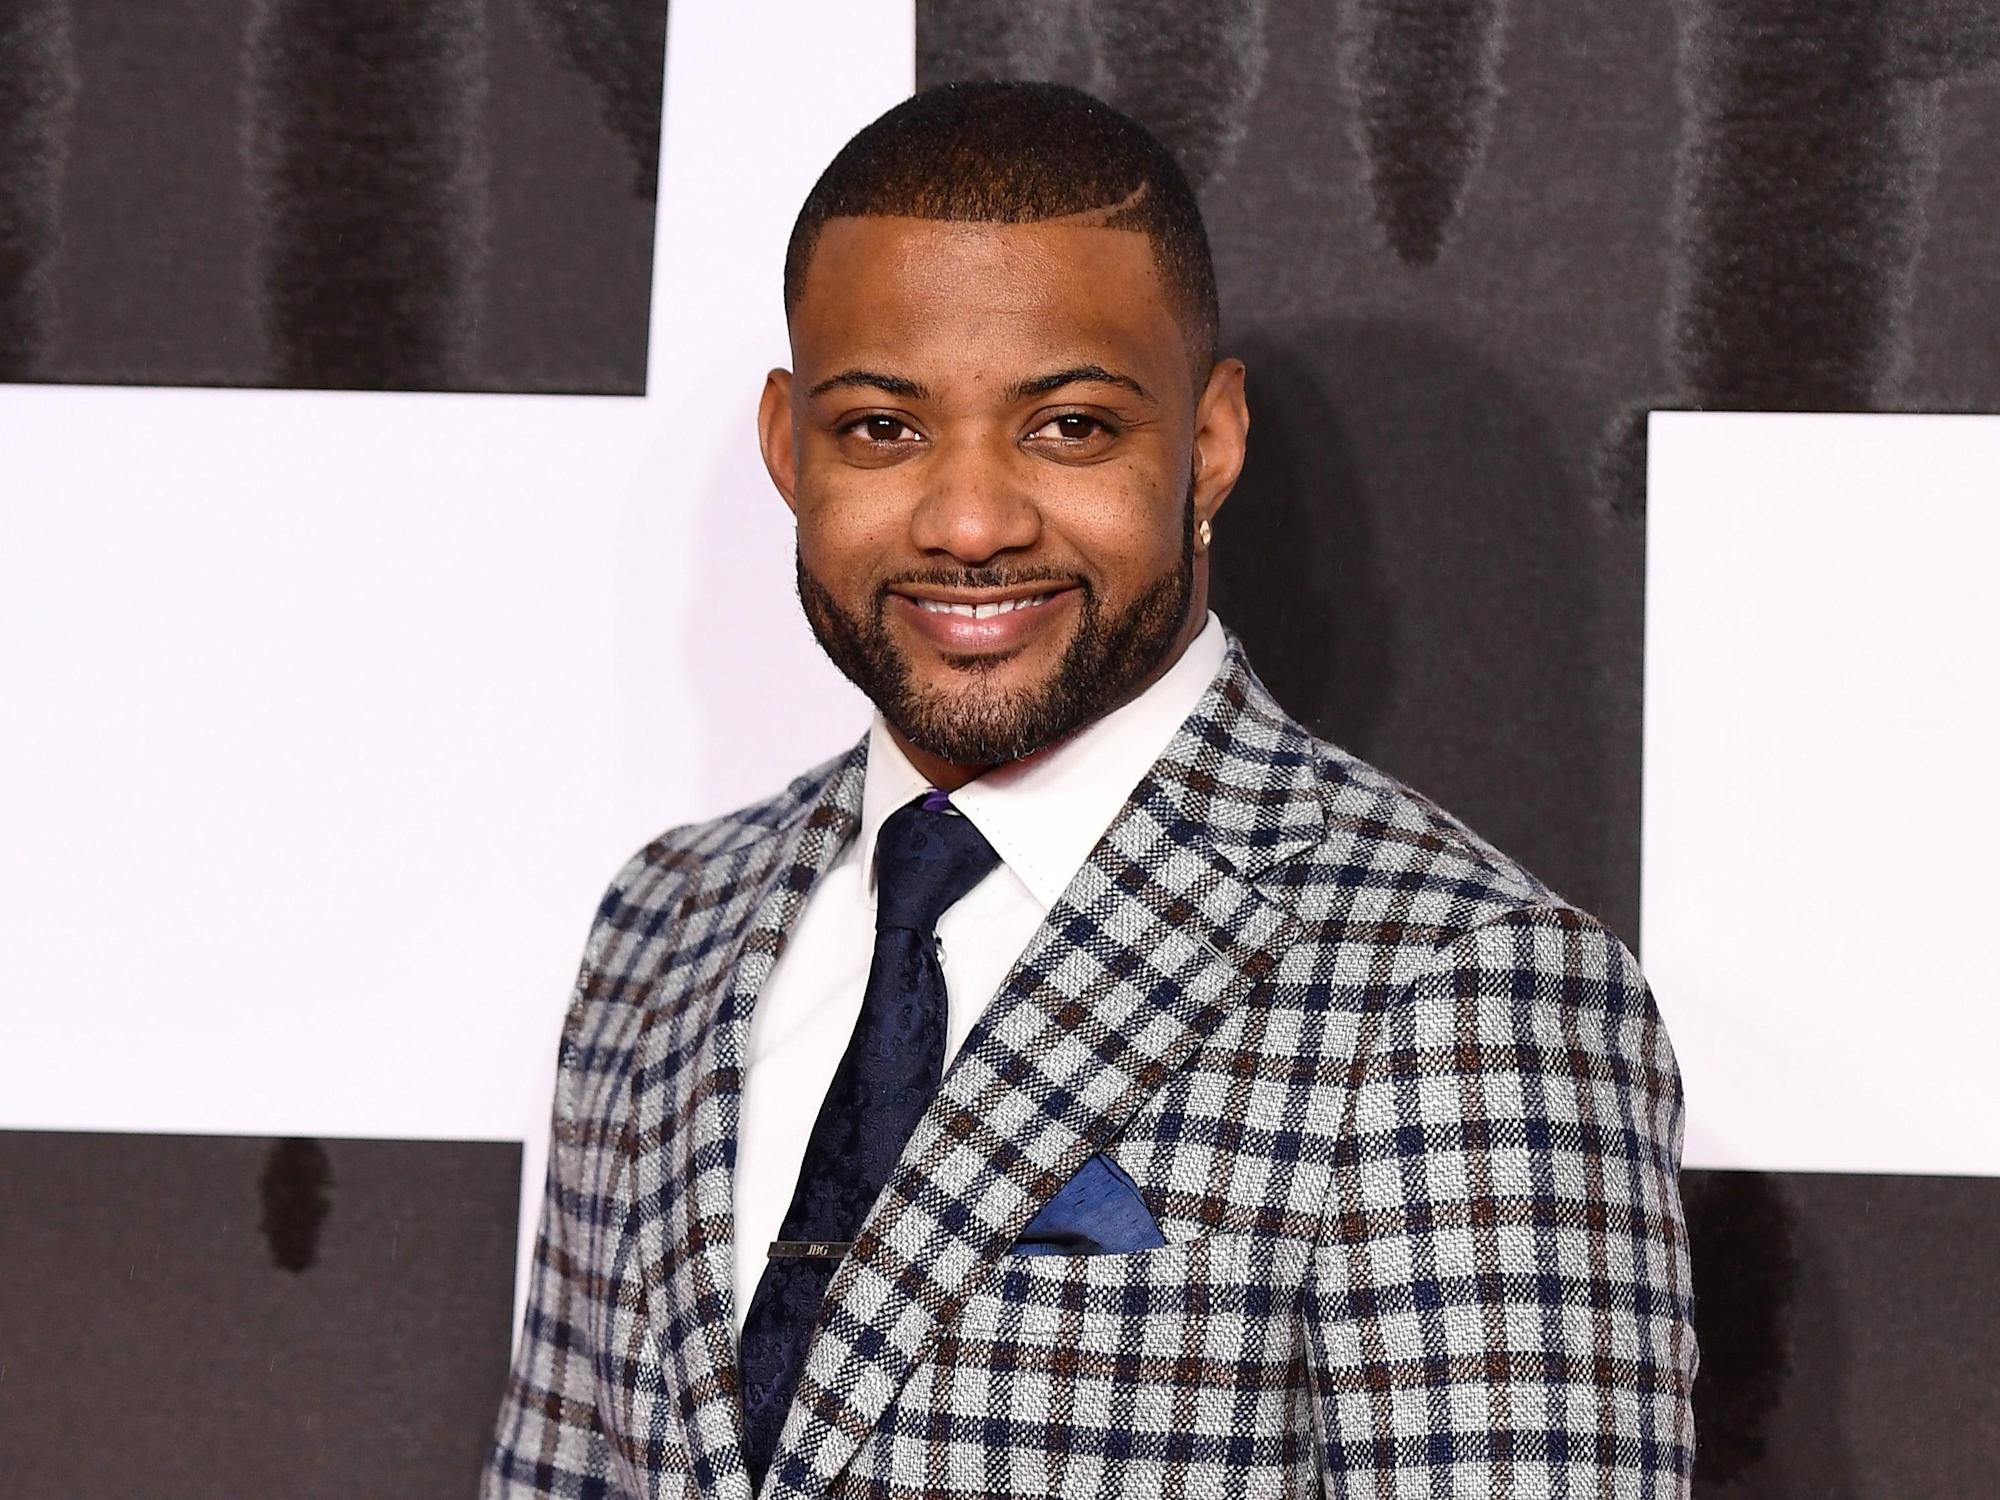 JB Gill: JLS singer hospitalised after being sprayed in face during 3am home raid